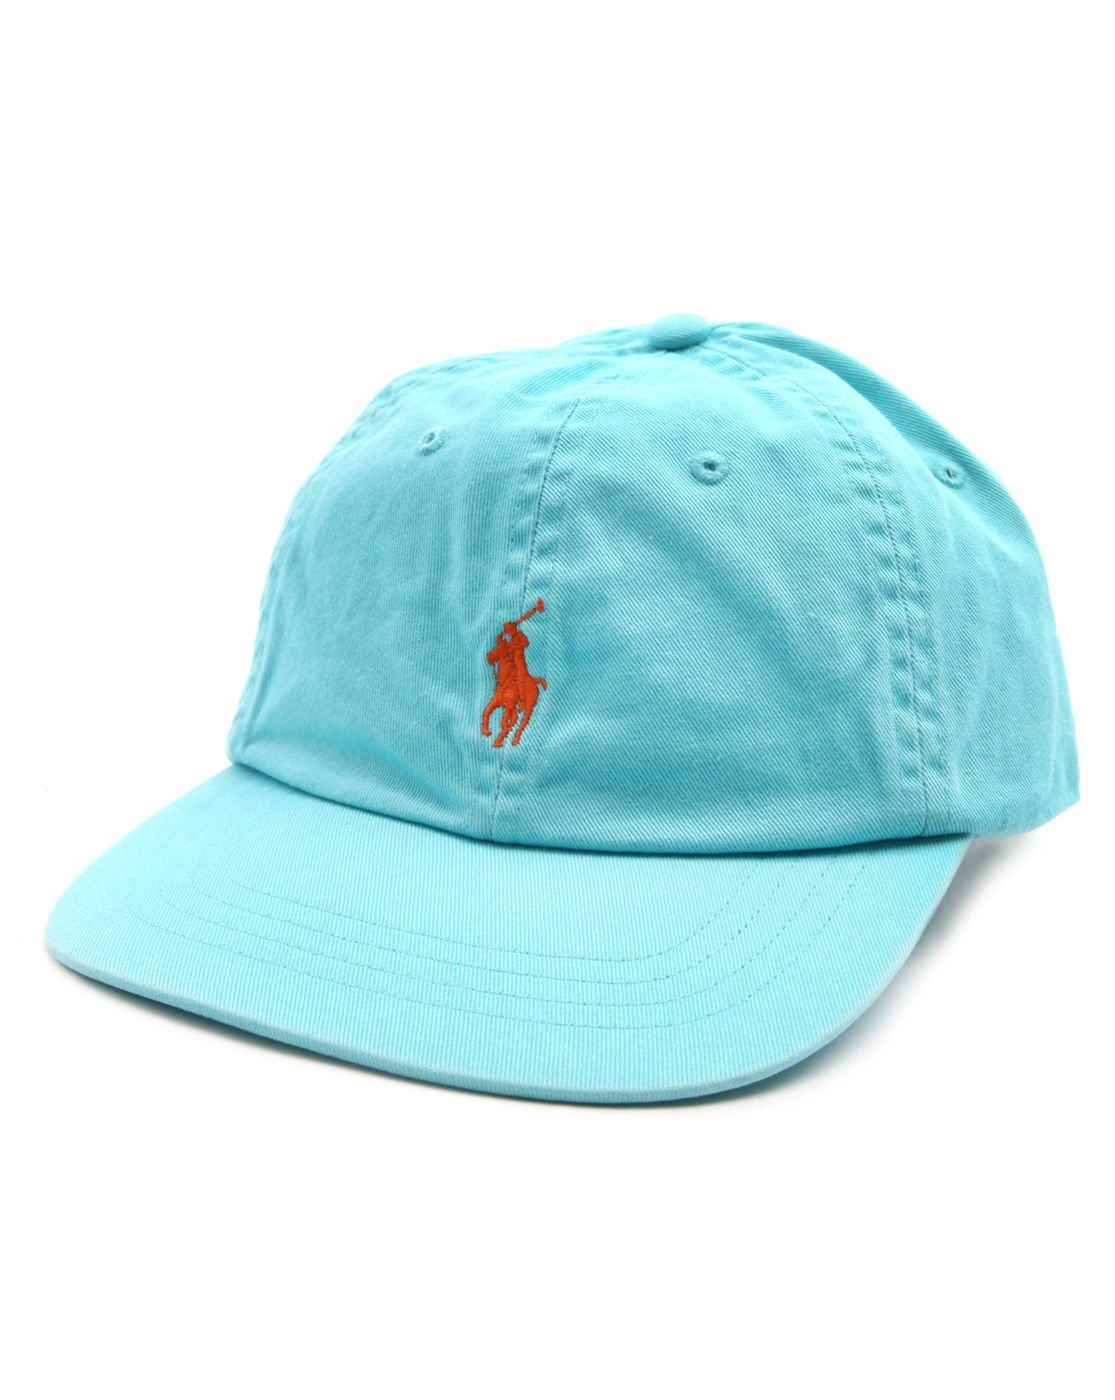 polo ralph lauren classic turquoise baseball cap in blue. Black Bedroom Furniture Sets. Home Design Ideas